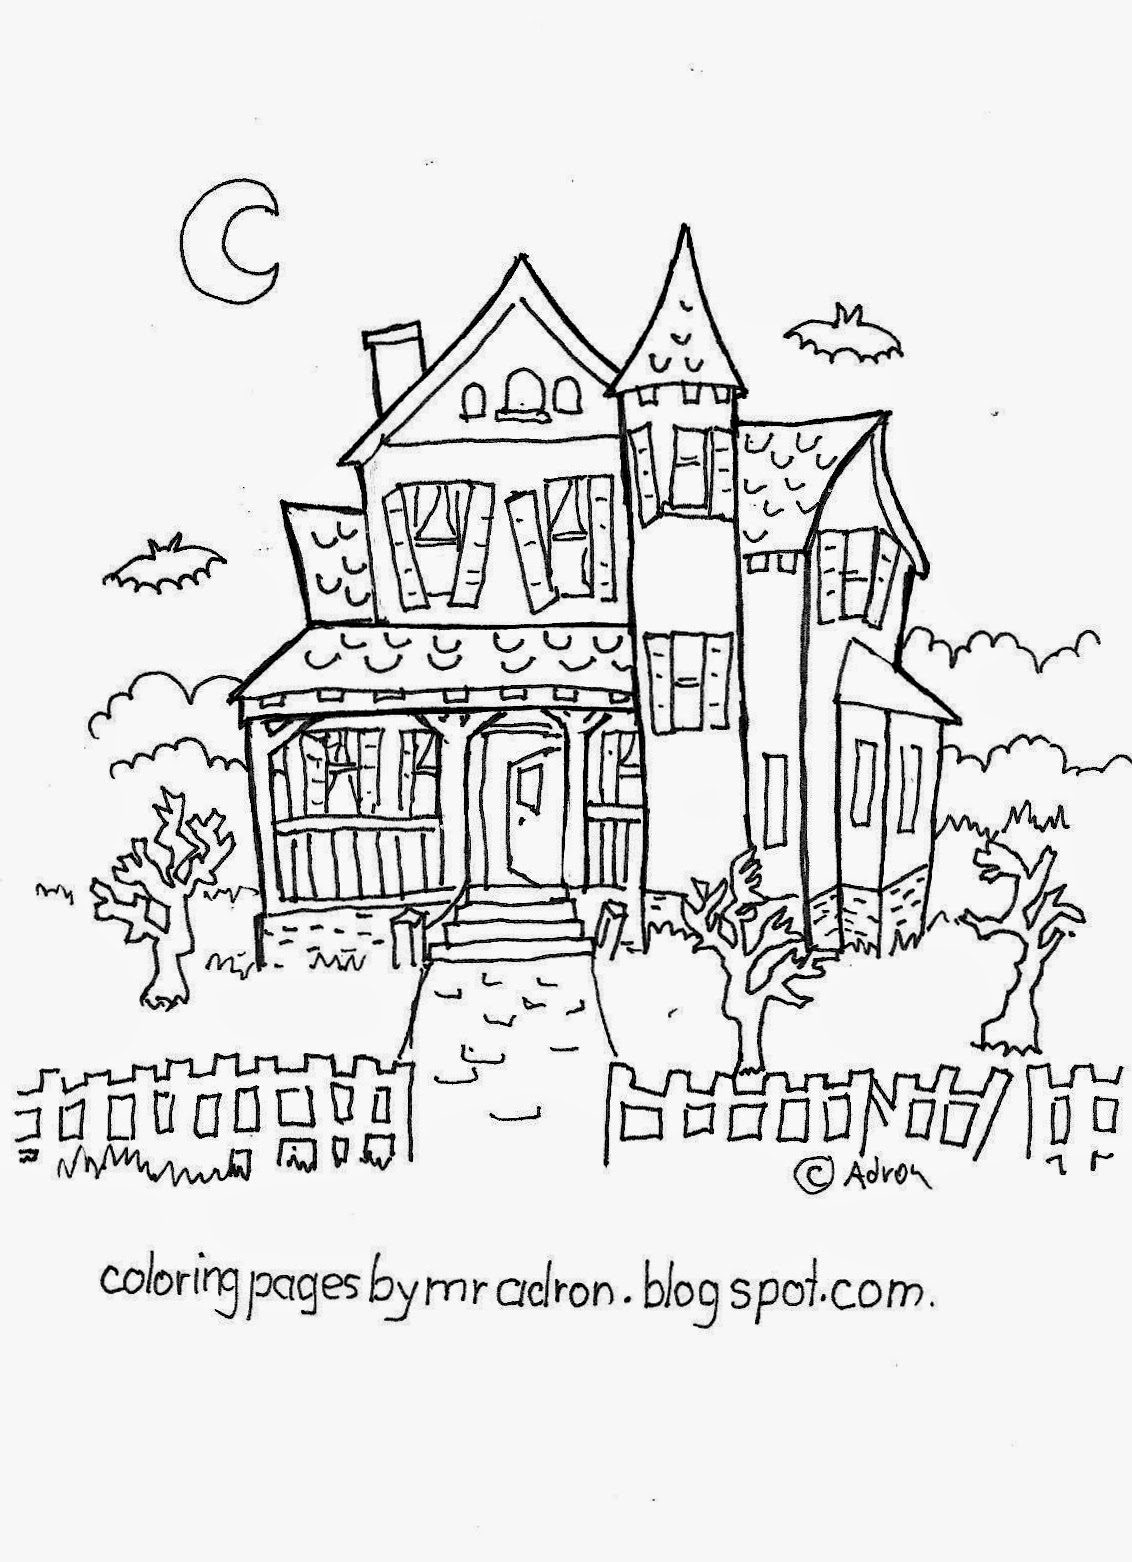 haunted house coloring pages for kids haunted house coloring pages for kids pages kids coloring house haunted for